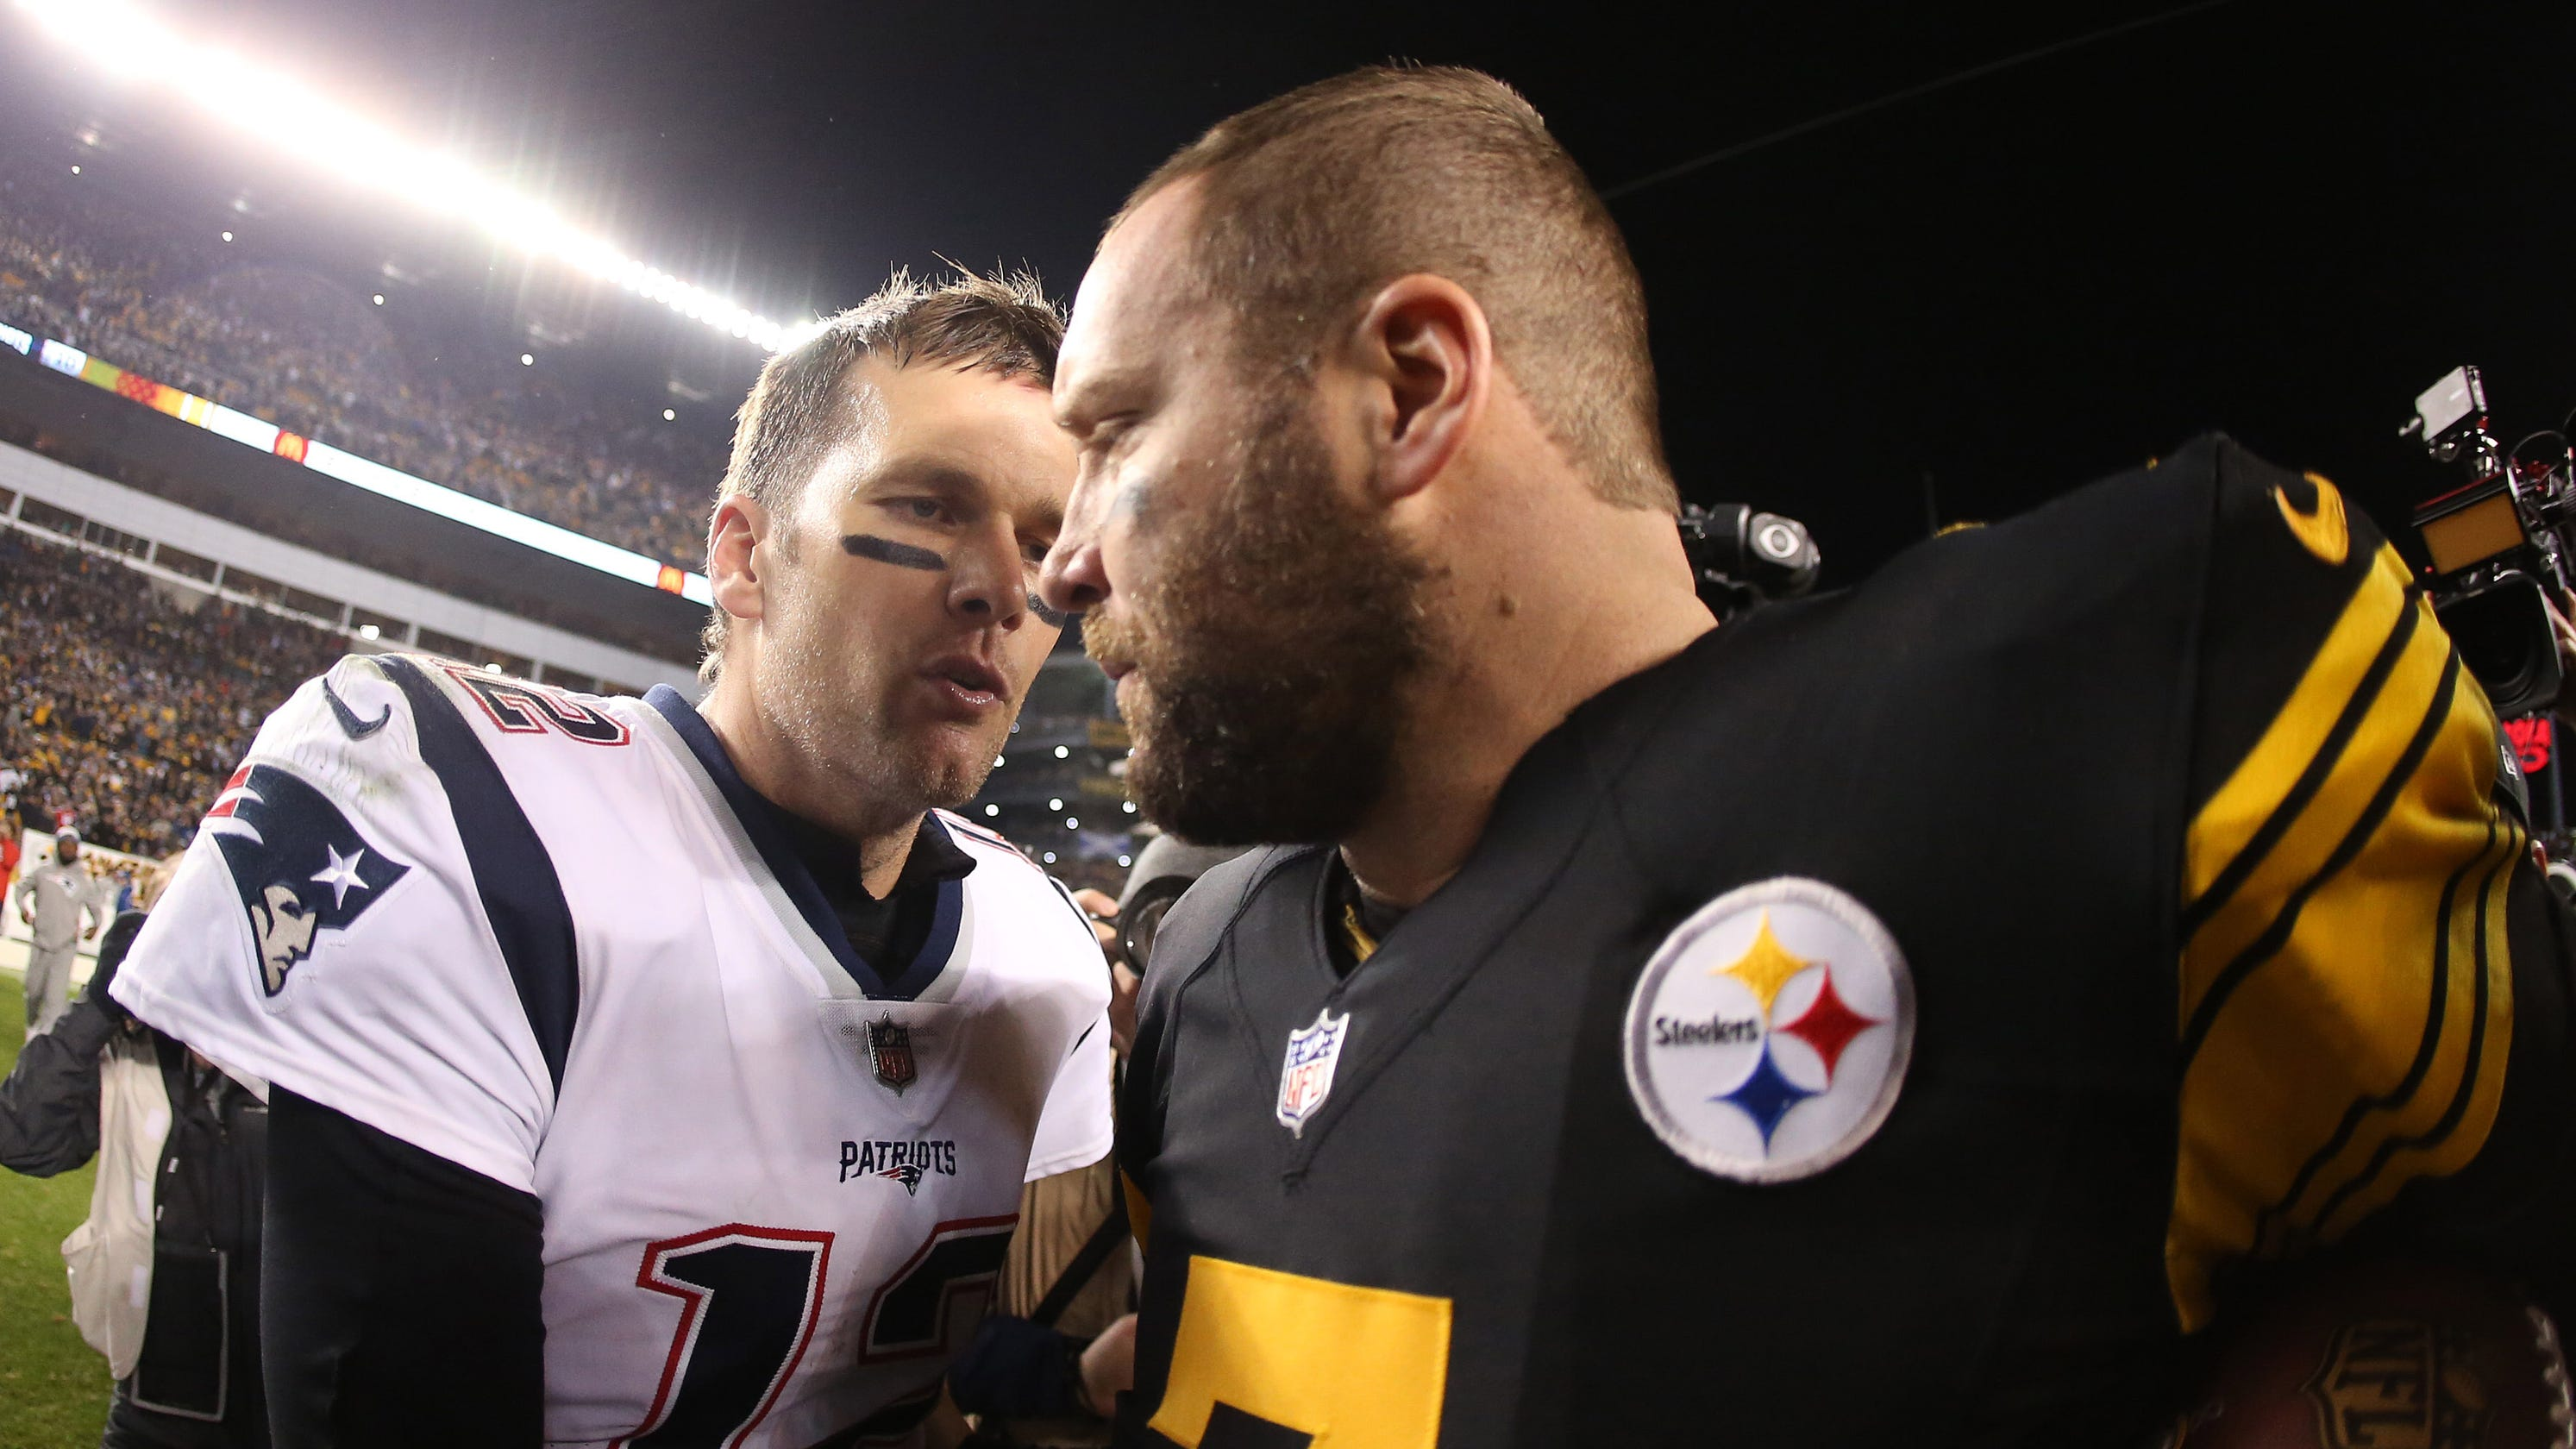 e9e75229a0f Pittsburgh Steelers make statement by closing out Tom Brady